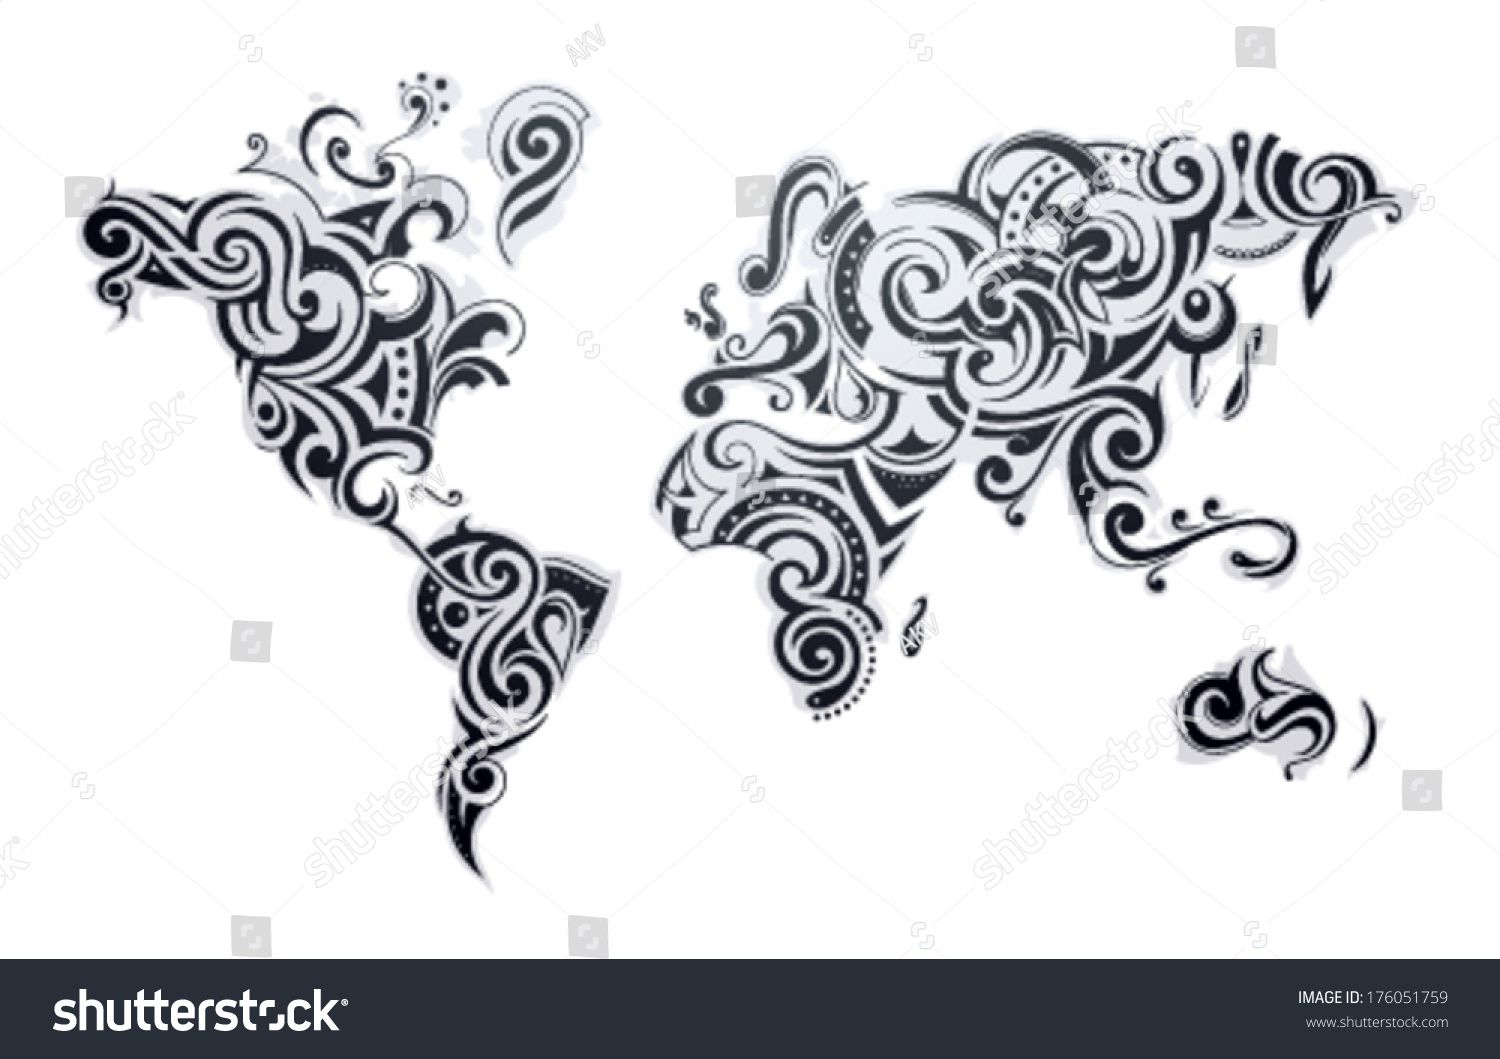 World map tattoo our earth as one tribe concept illustration world map tattoo our earth as one tribe concept illustration gumiabroncs Images